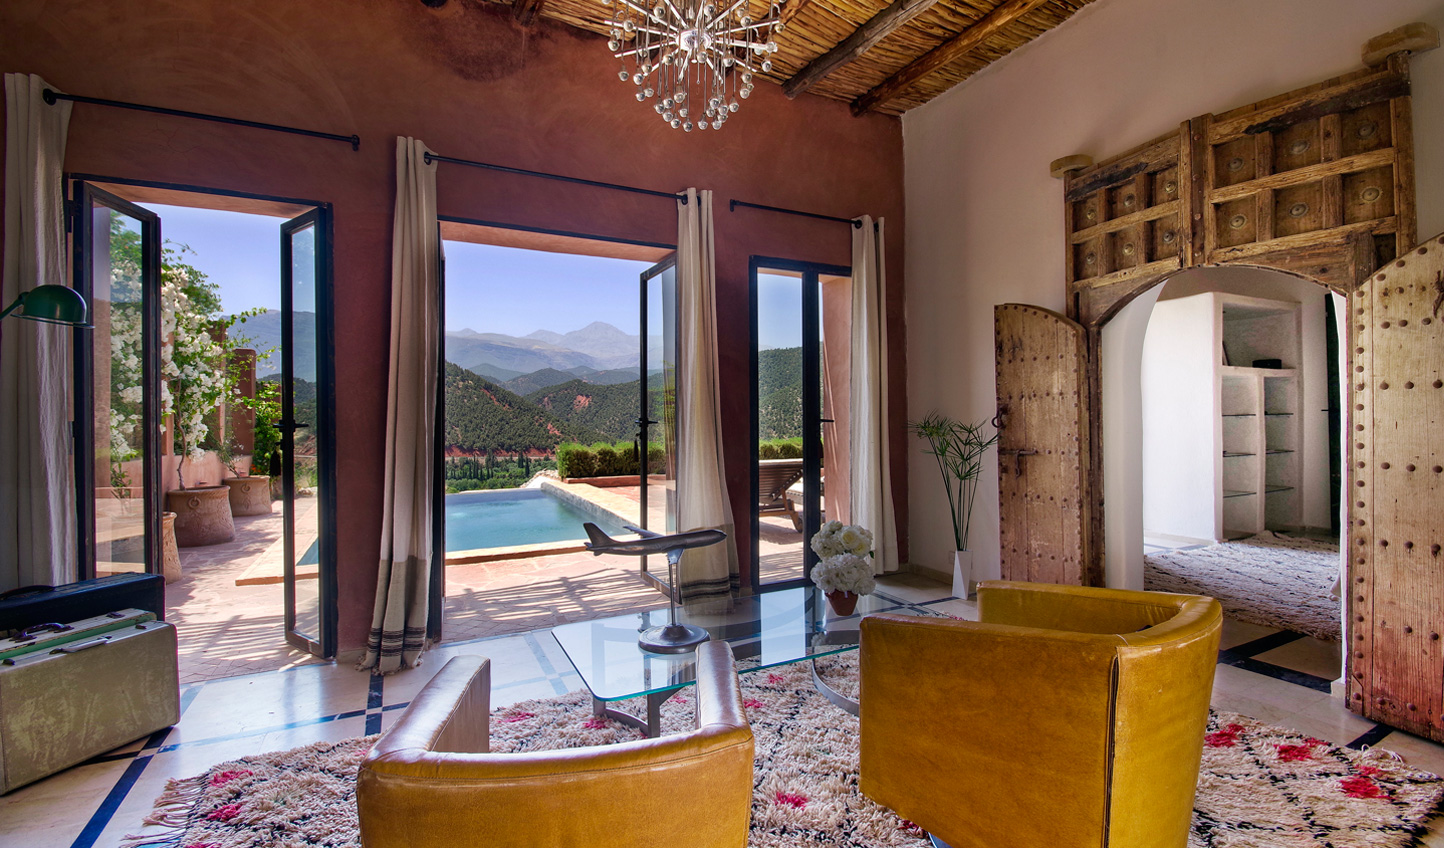 Retreat to the Kasbah Bab Ourika Villa for stylish interiors and a private pool